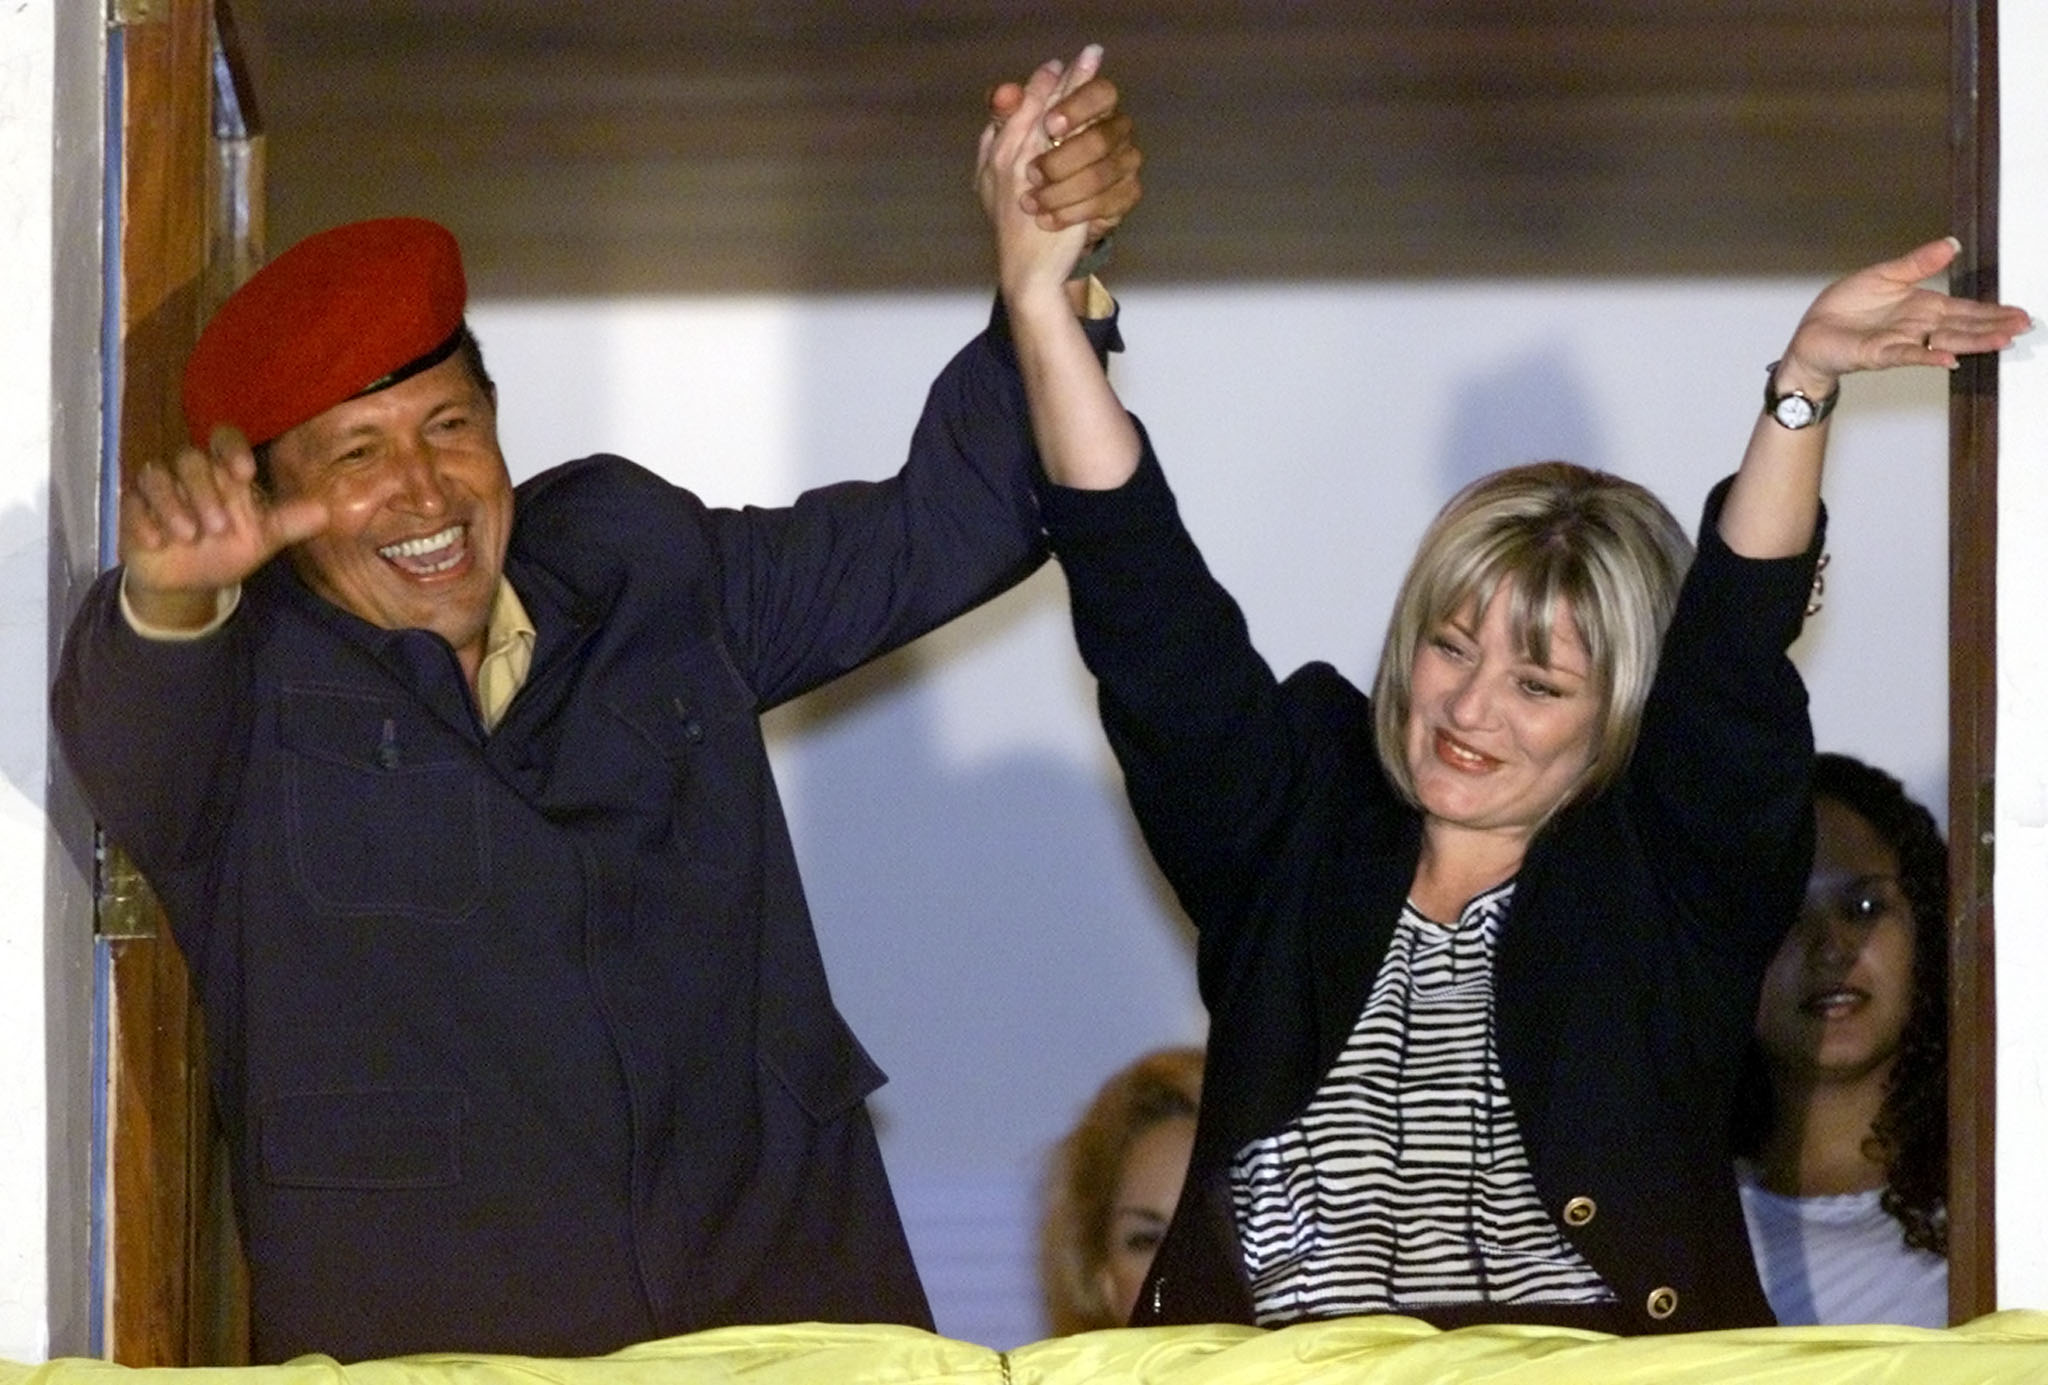 Venezuelan President Hugo Chavez (L) and his wife Marisabel wave to supporters from the balcony of the presidential palace while celebrating the first official results that showed Chavez with a clear victory over rival [Francisco Arias] in general elections held July 30, 2000. ©REUTERS